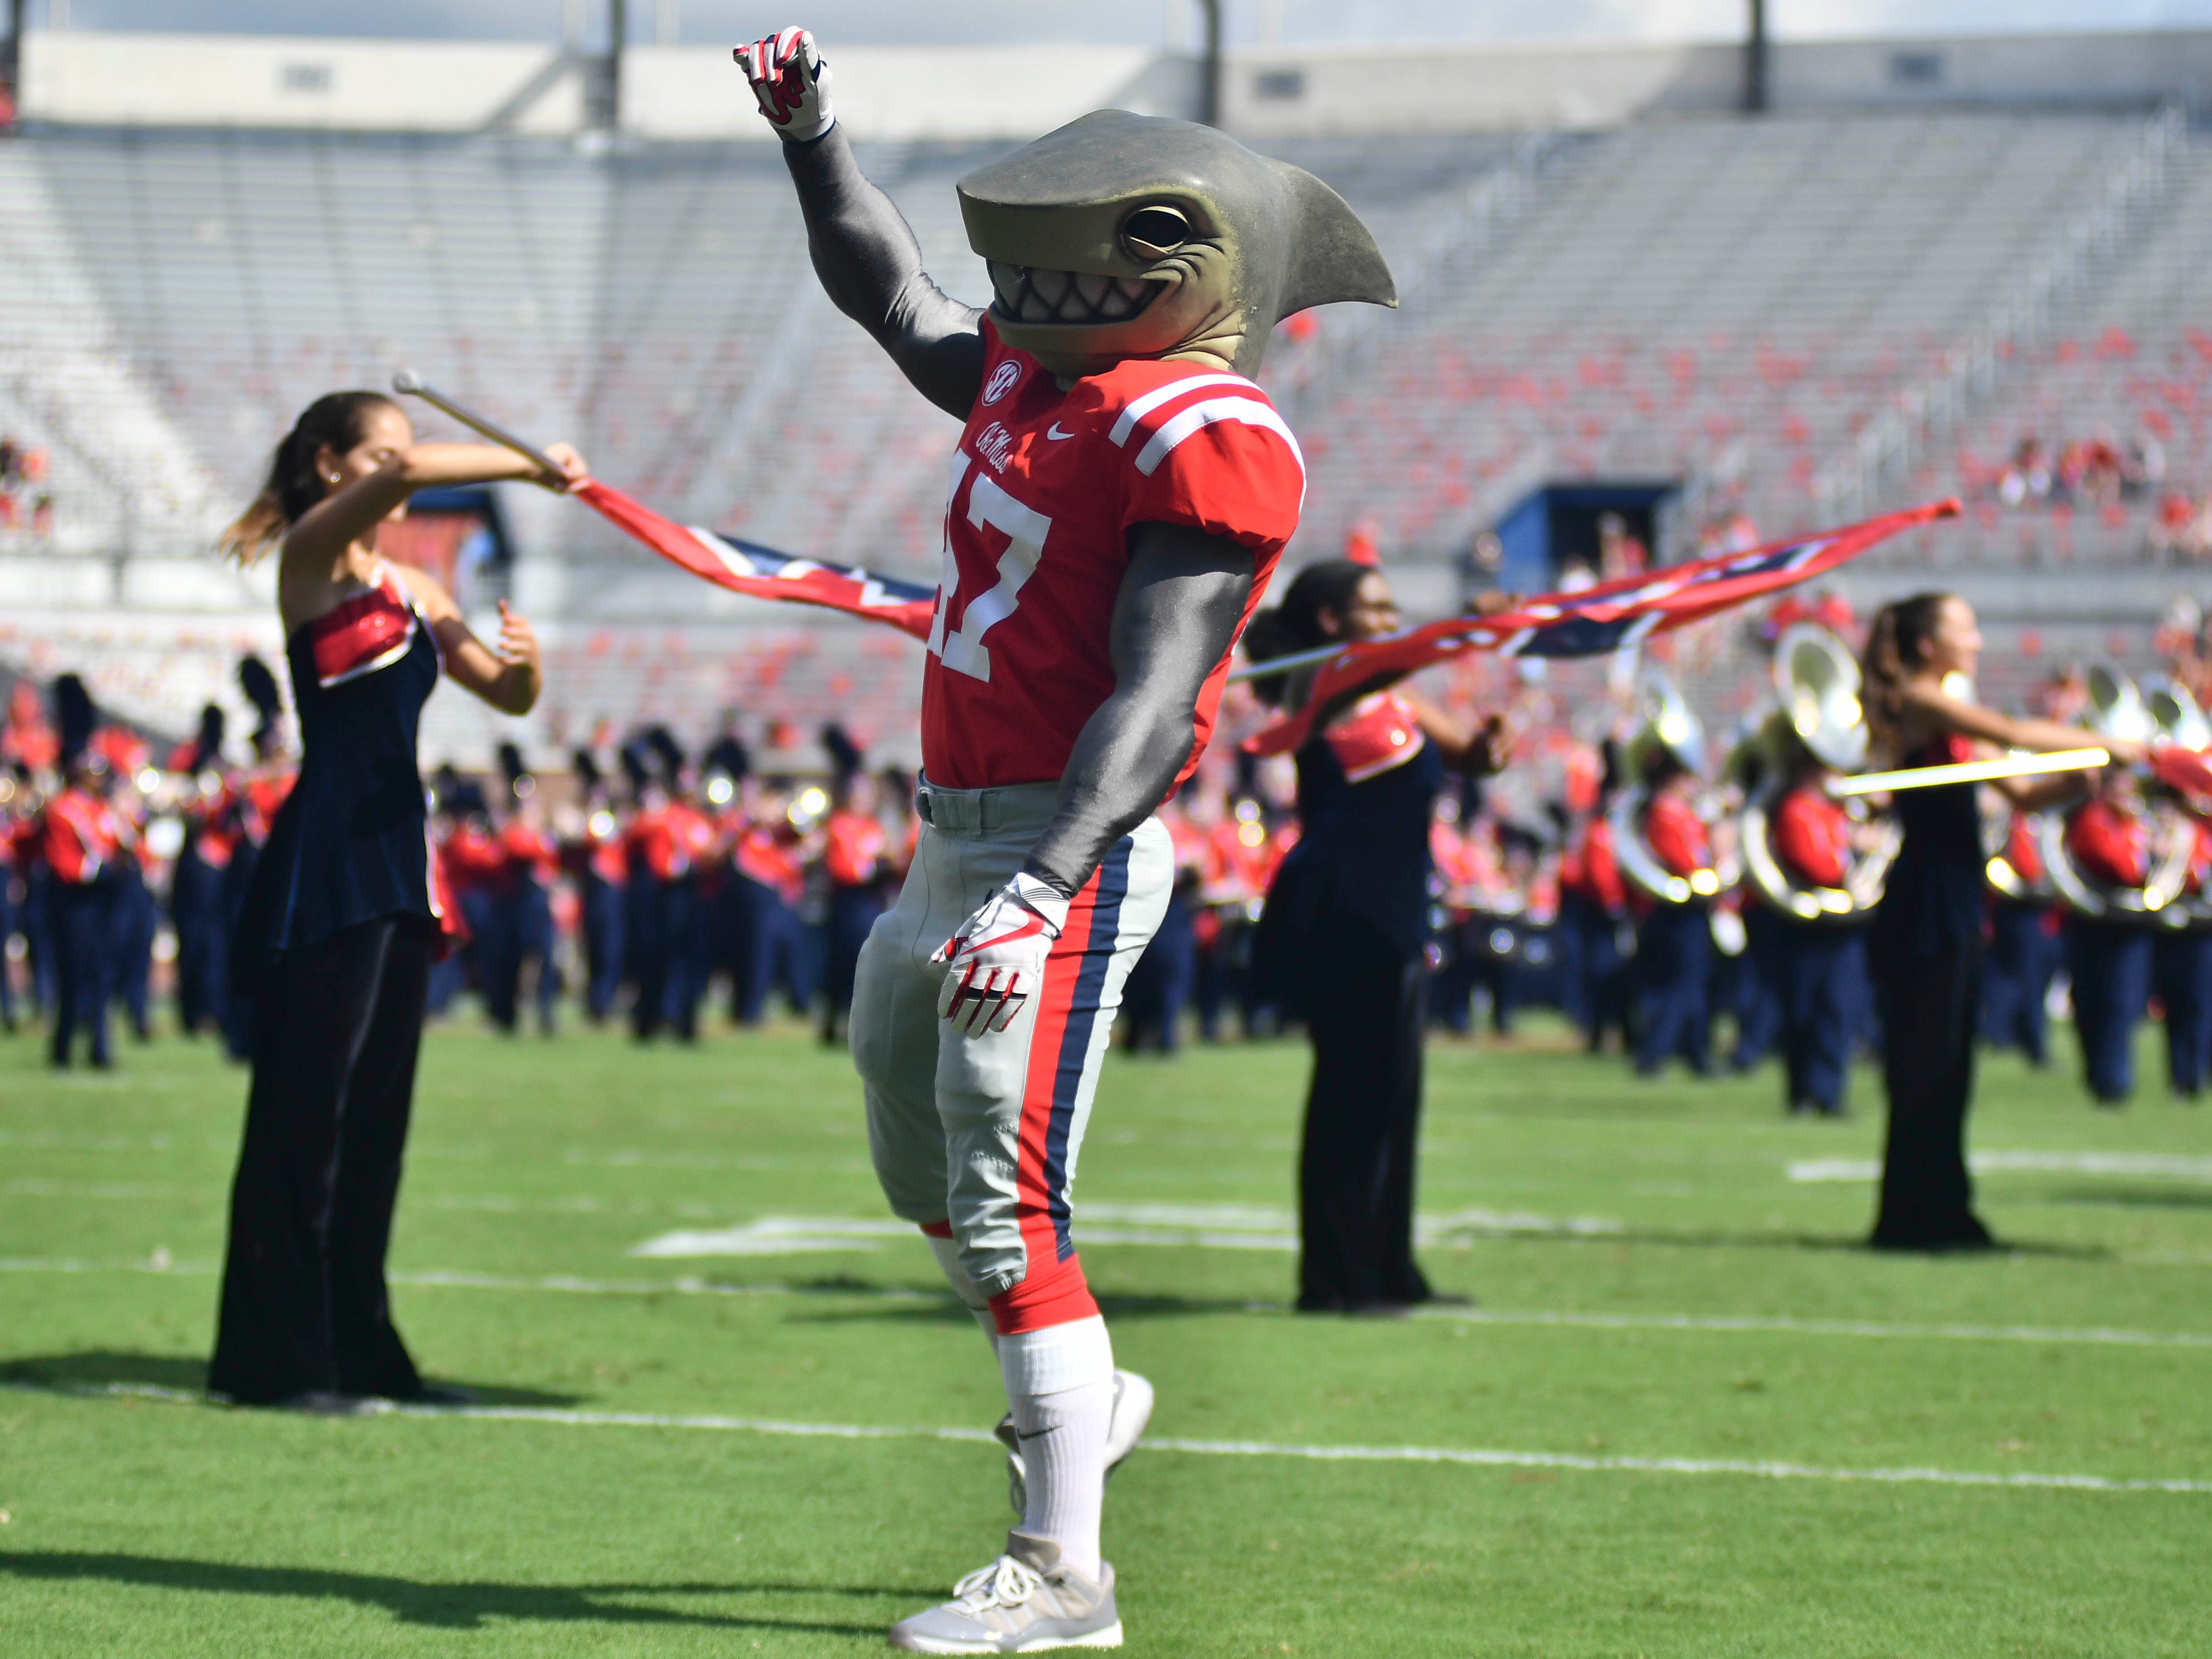 Mississippi Rebels mascot Tony performs before the game against the Kent State Golden Flashes at Vaught-Hemingway Stadium.